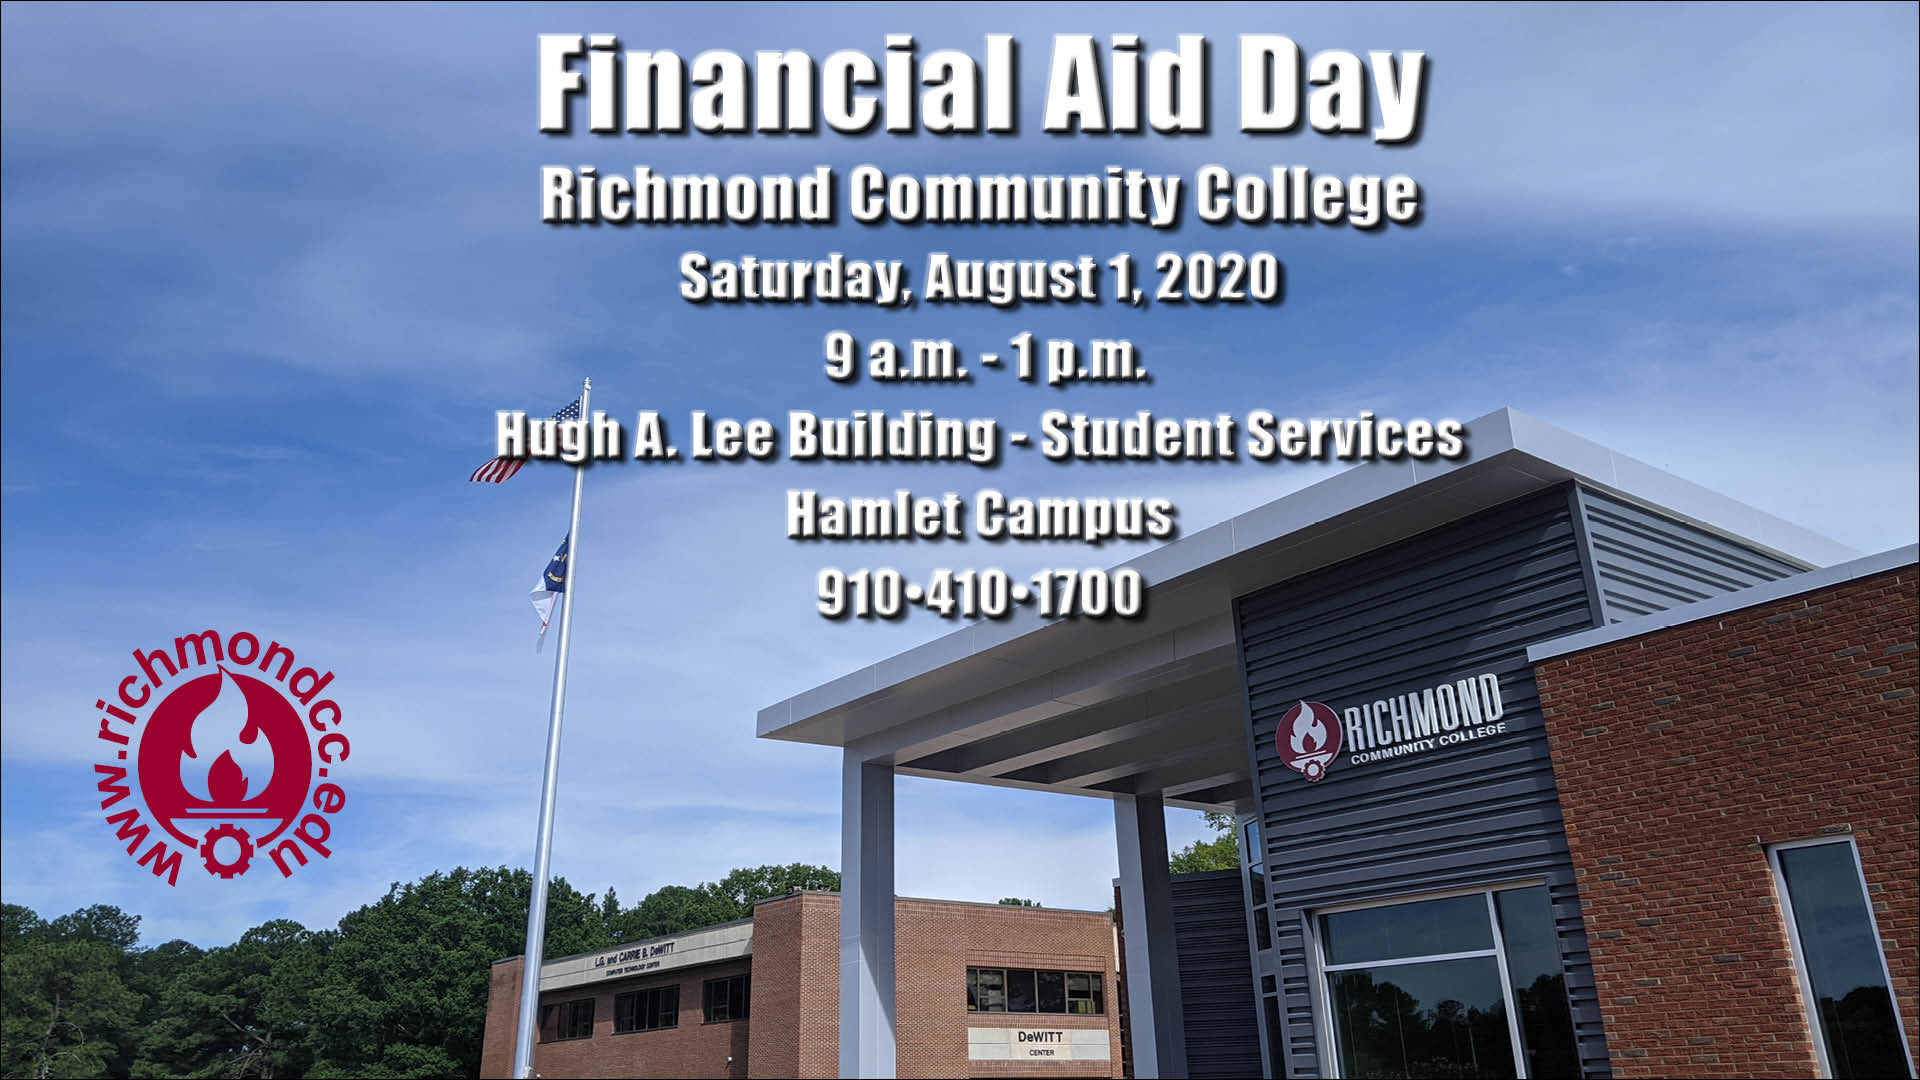 Financial Aid Day Fall 2020